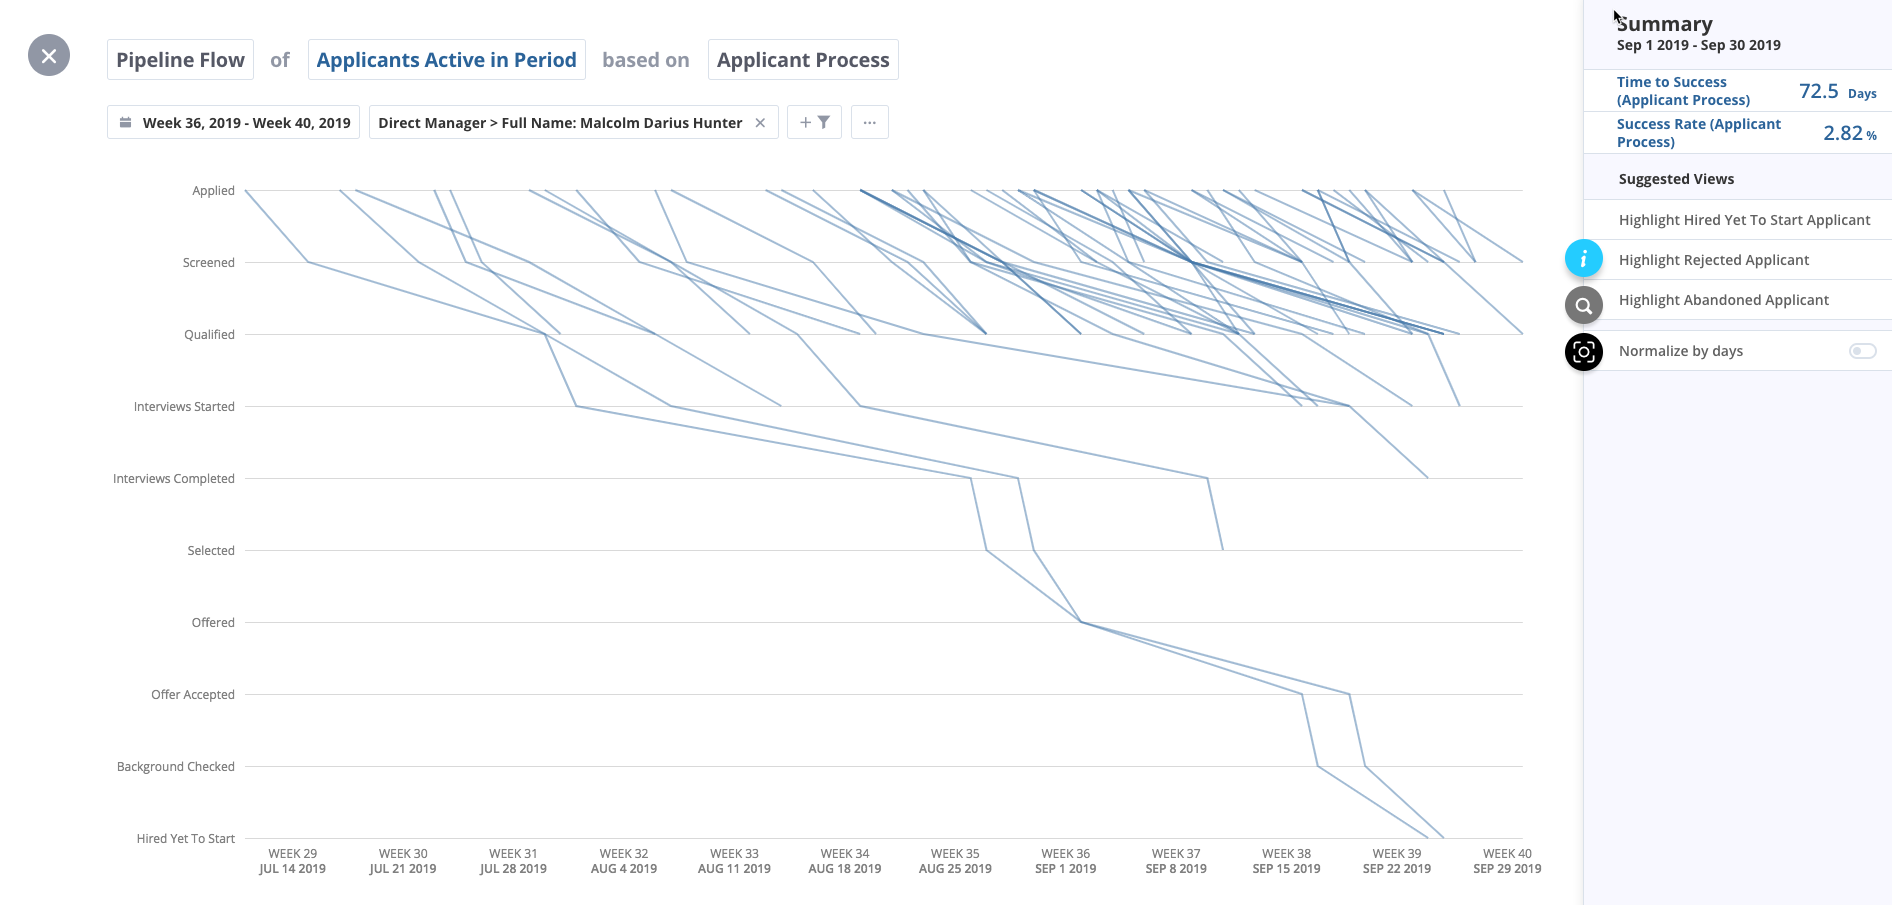 pipeline flow of applicants active in period based on applicant process